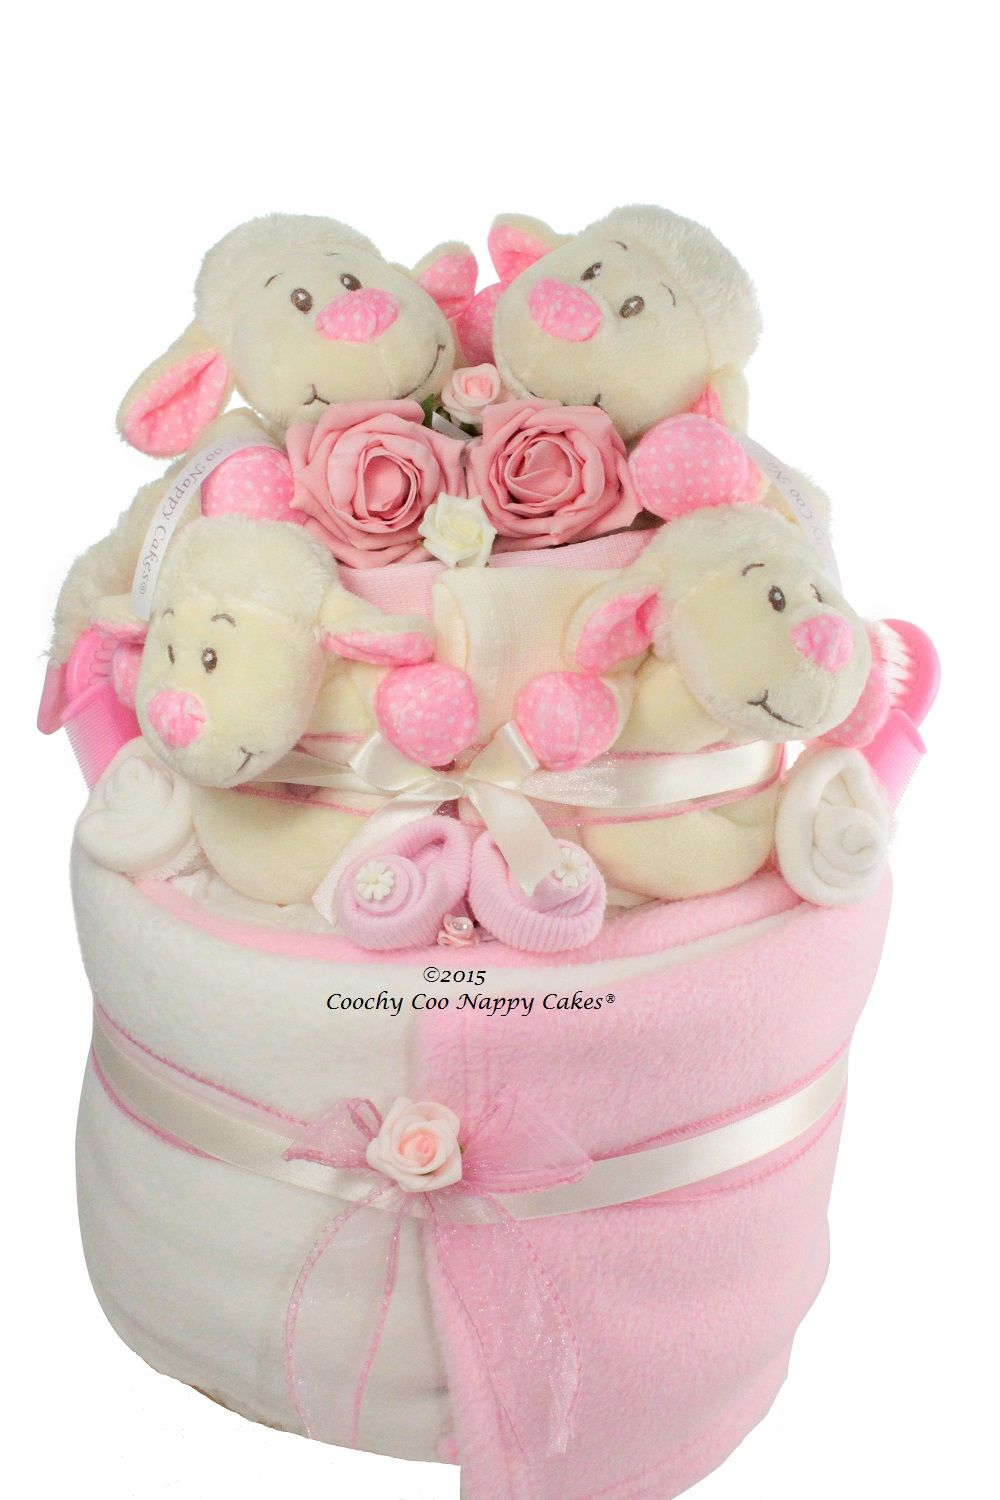 New Baby Girl Gift Ideas Uk : Newborn twin gifts uk gift ftempo